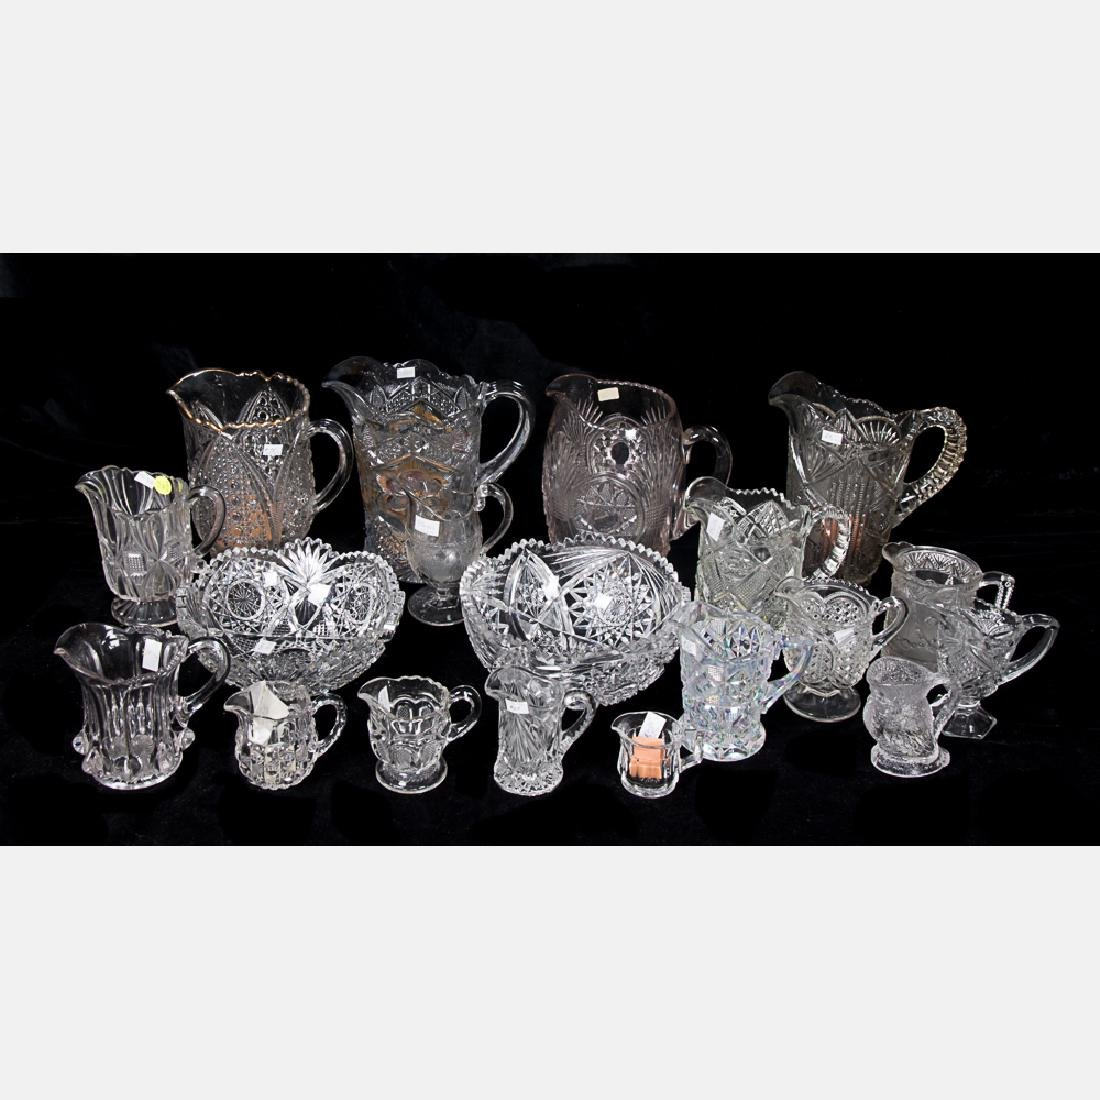 A Collection of American Pattern Glass, 19th/20th